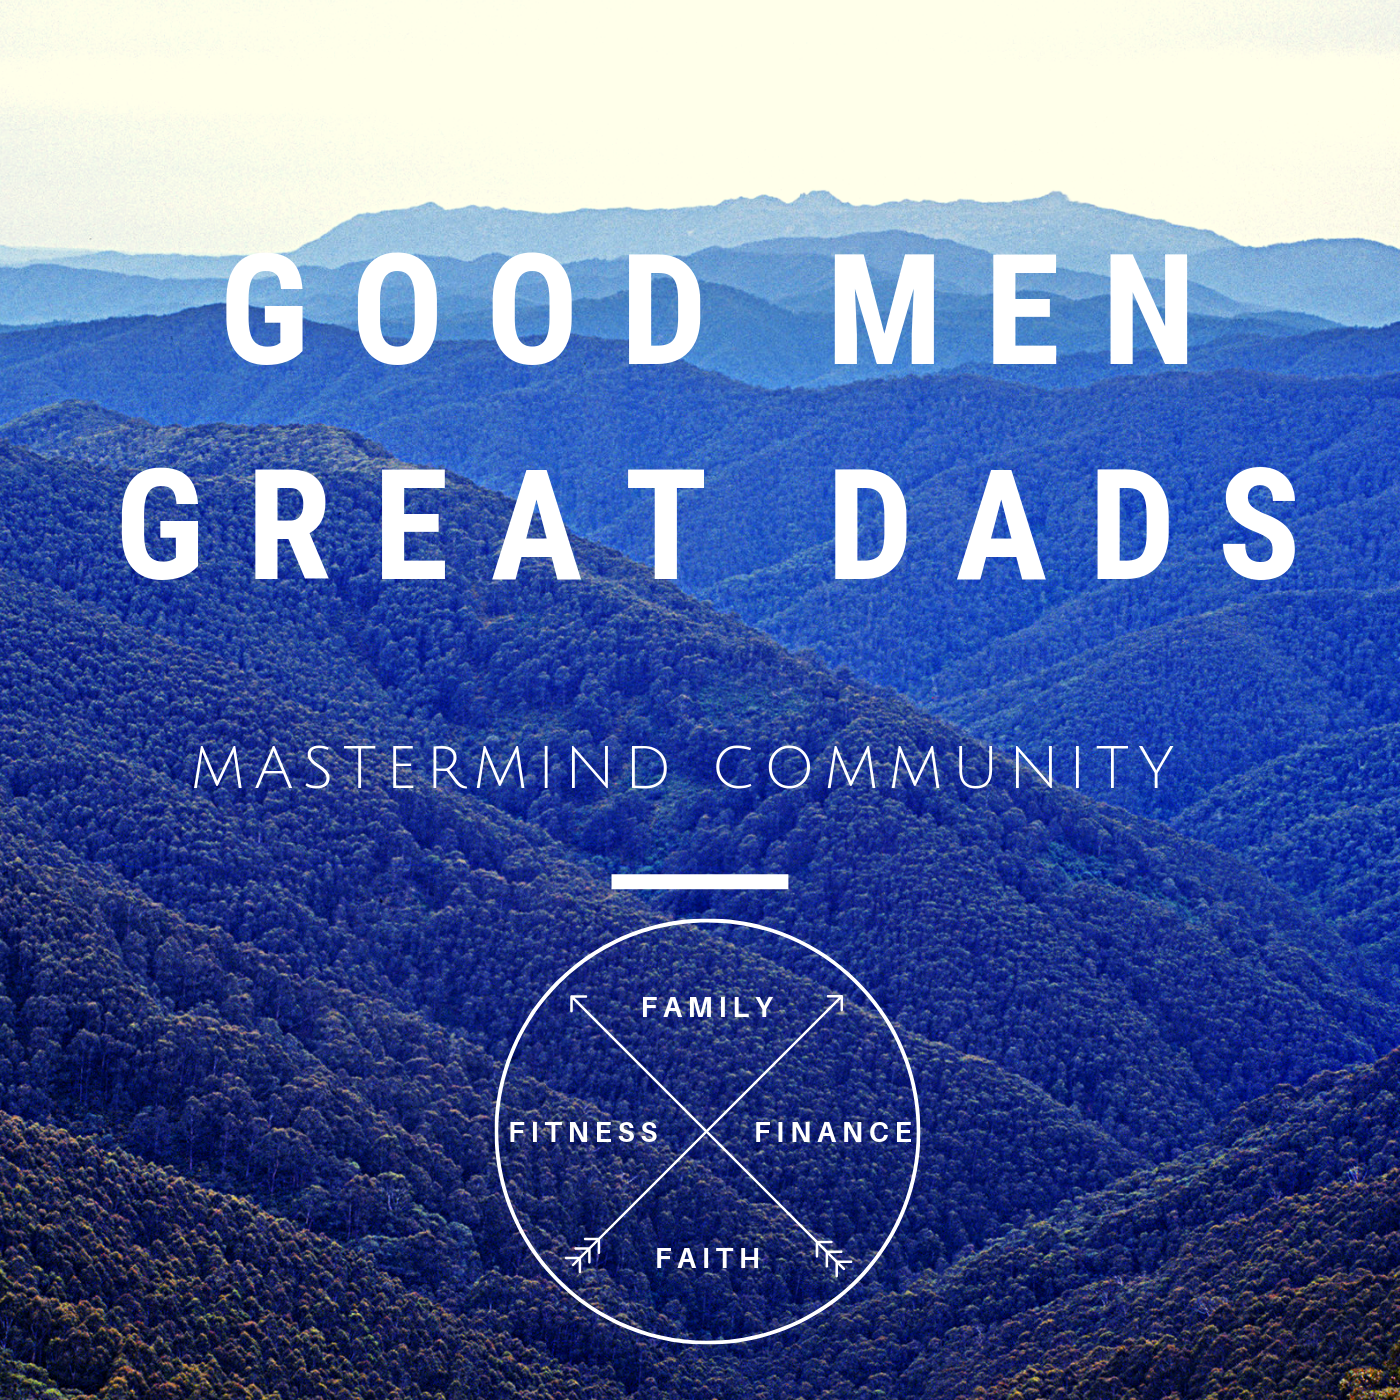 Good Men Great Dads Mastermind